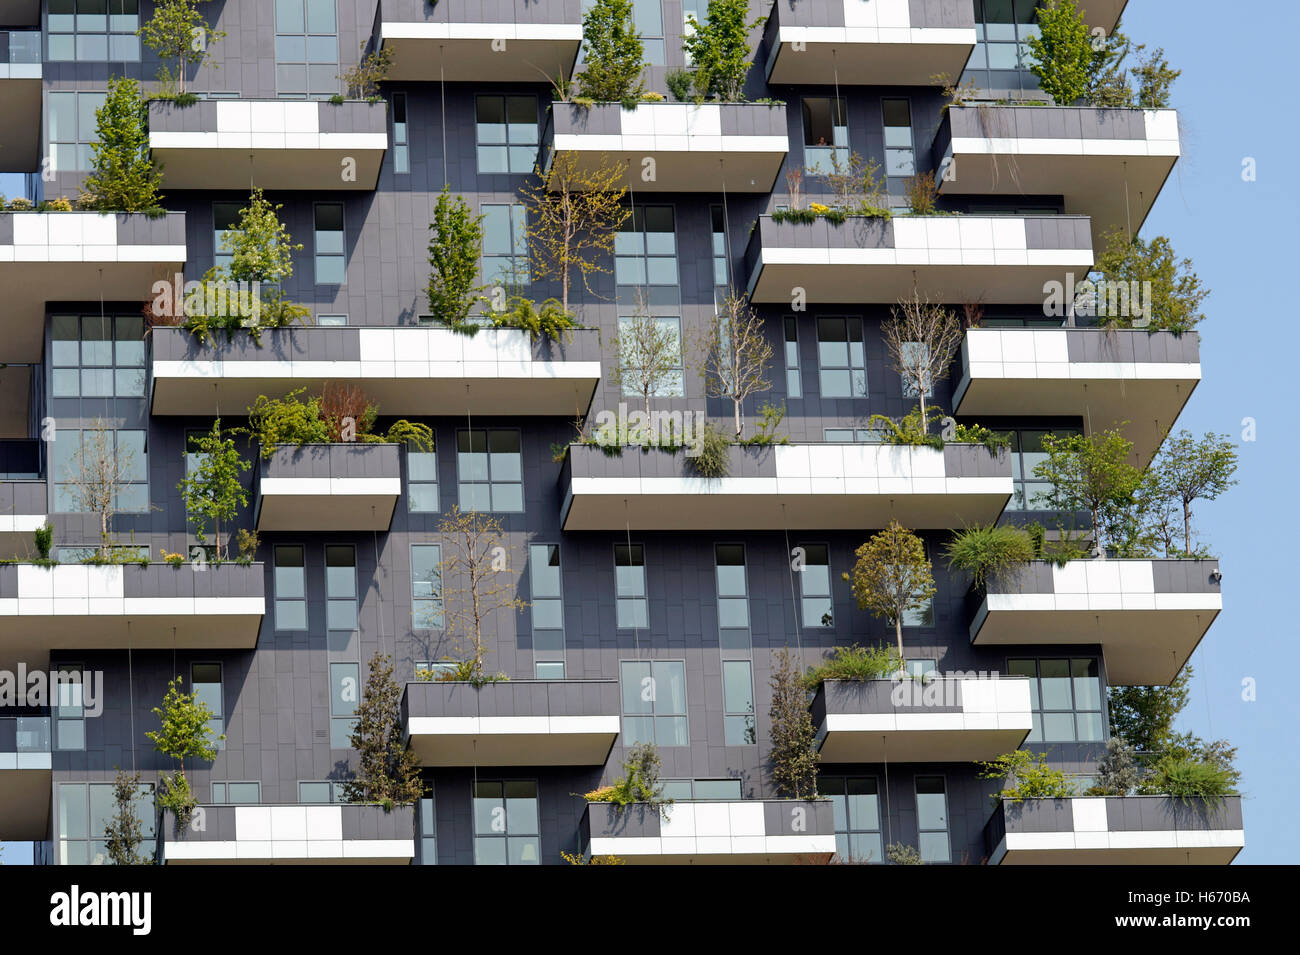 Balcony flowers garden flower green balconies for Balcony modern